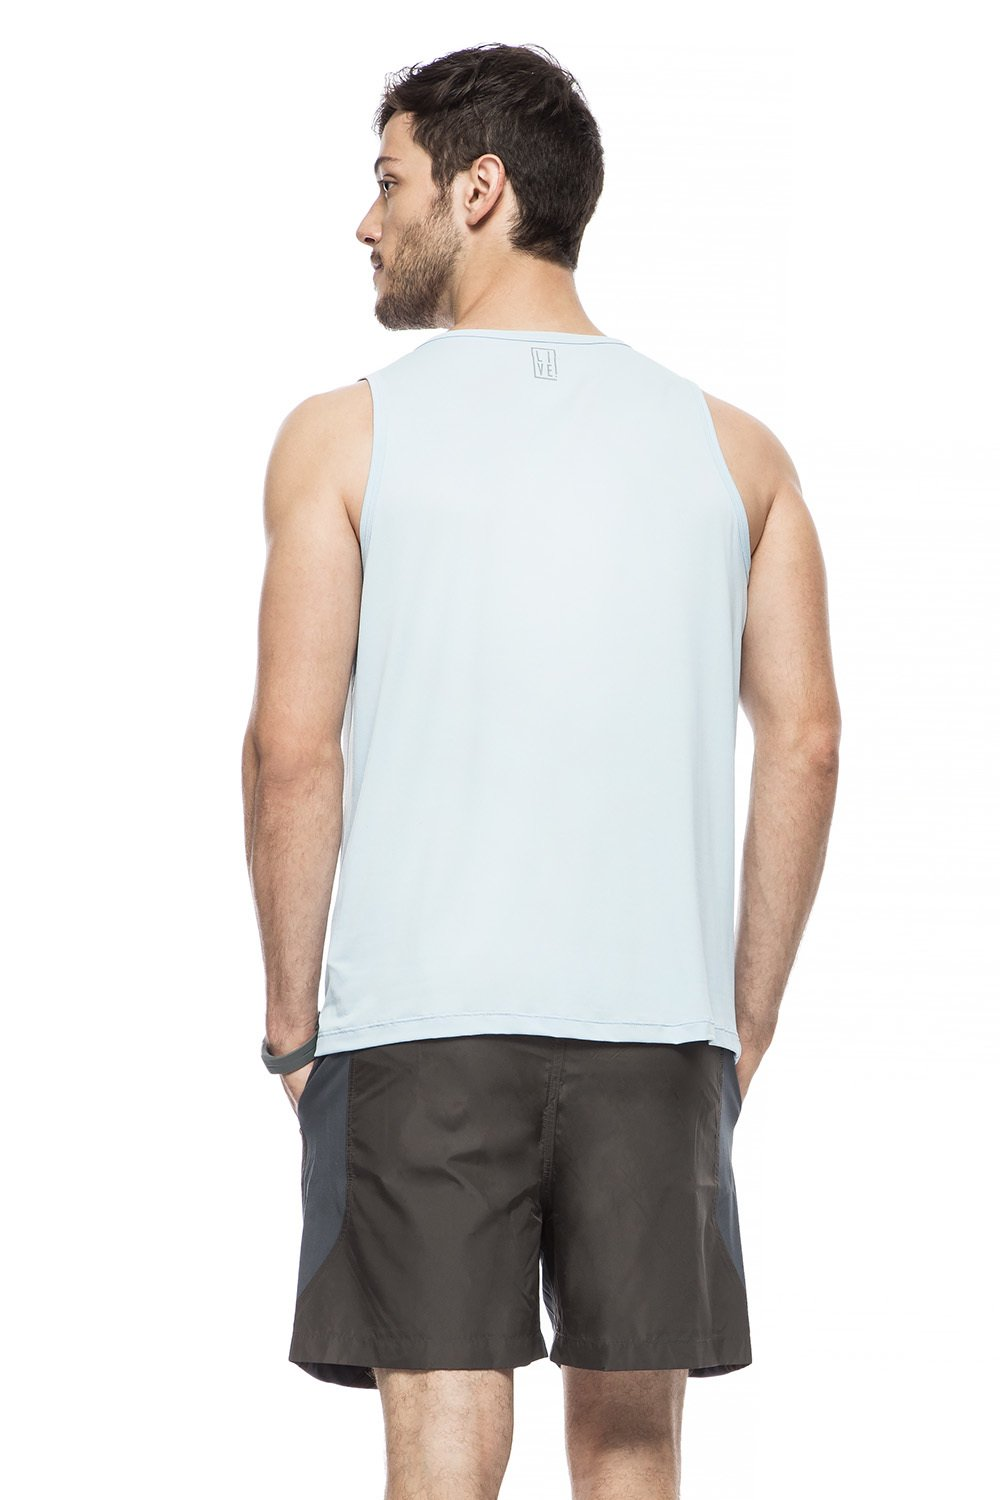 All-Day Comfort Tank-Top 2